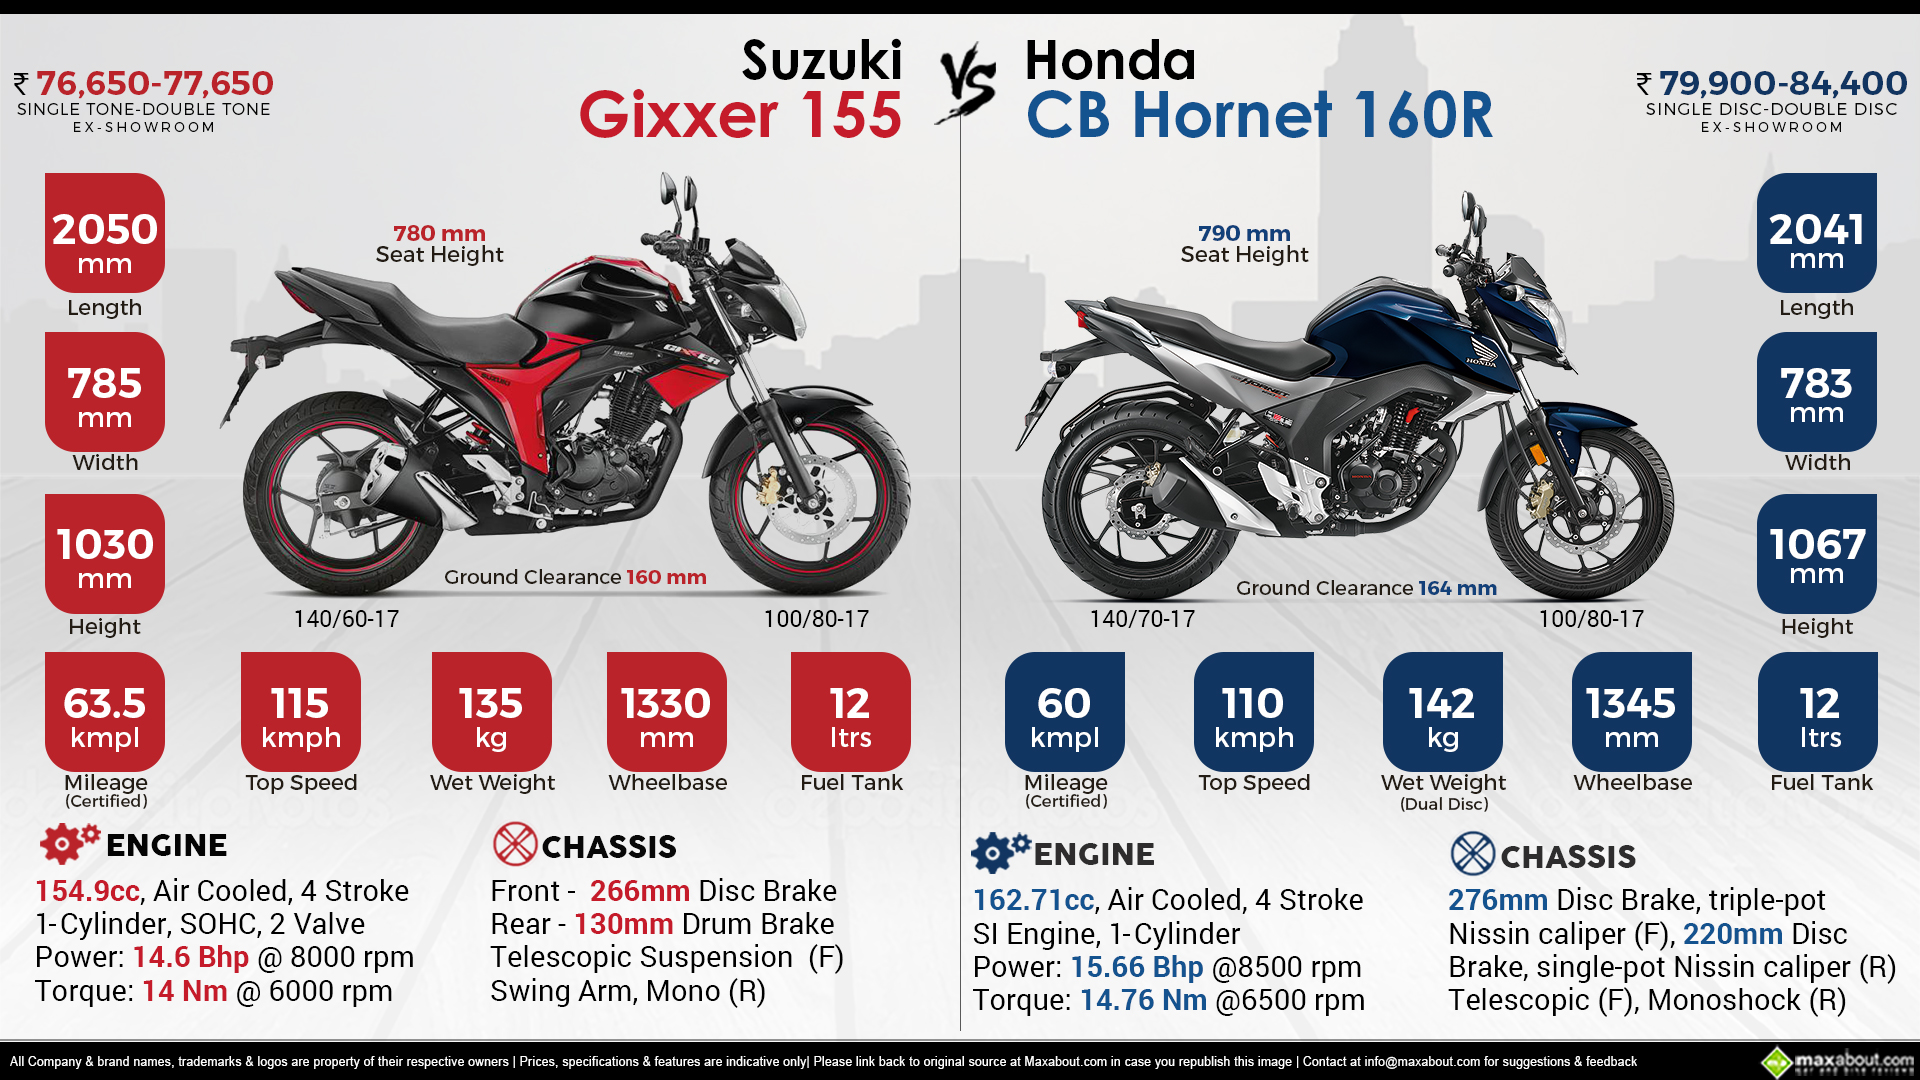 latest rc cars with Honda Cb Hor  160r Vs Suzuki Gixxer 155 on 7401 also Image 1949830 also Naias 2015 Lexus Expands F Lineup 2016 Gs F further Lewis Hamilton moreover Victor Harbor Mclaren Vale And Ki Named In Top 50 Small Towns In Australia Photos.